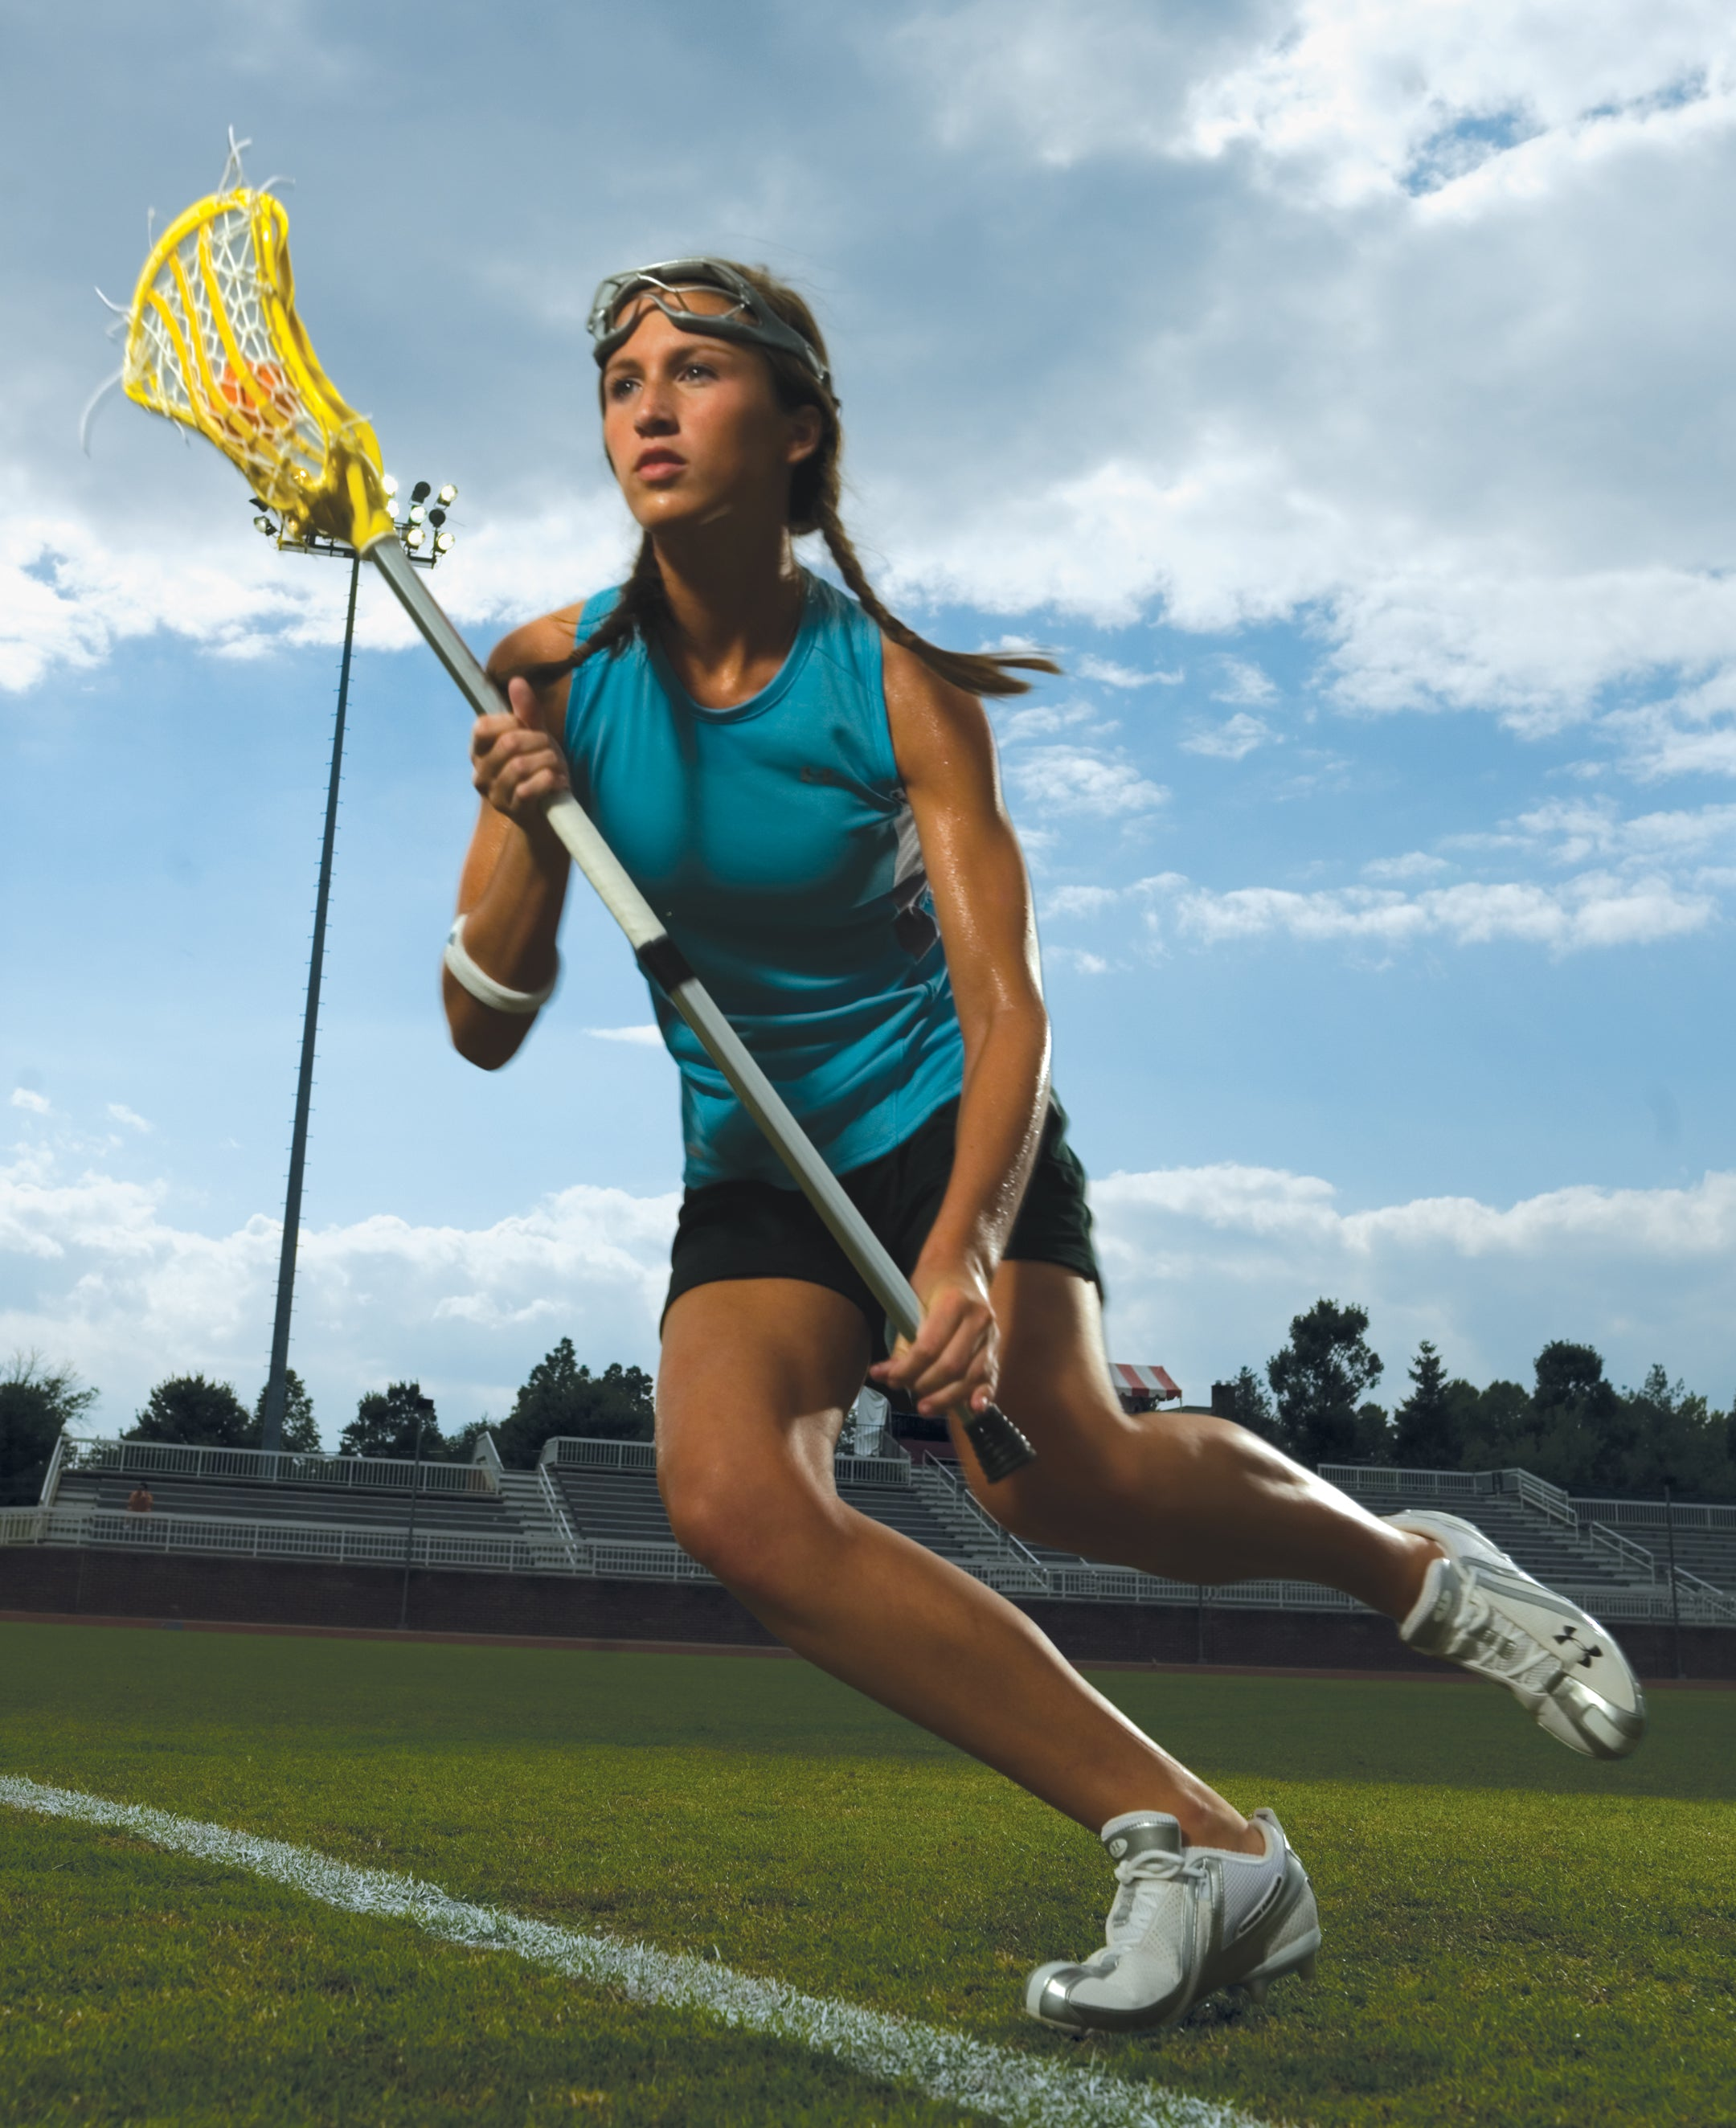 Girl playing lacrosse with complete lacrosse stick and full equipment in Edmonton, Canada.